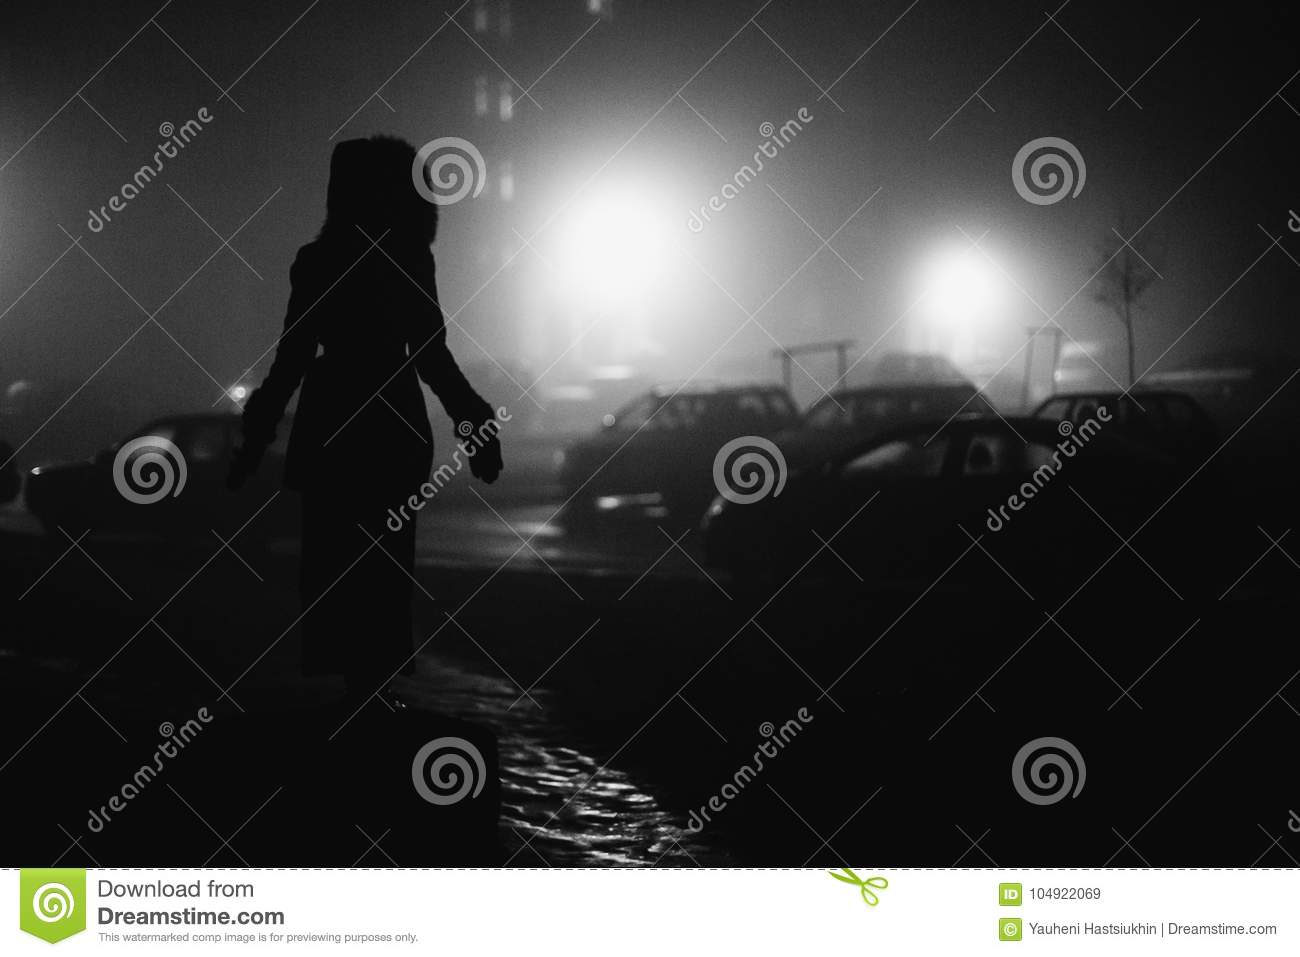 Creative black and white photography stock image image of people